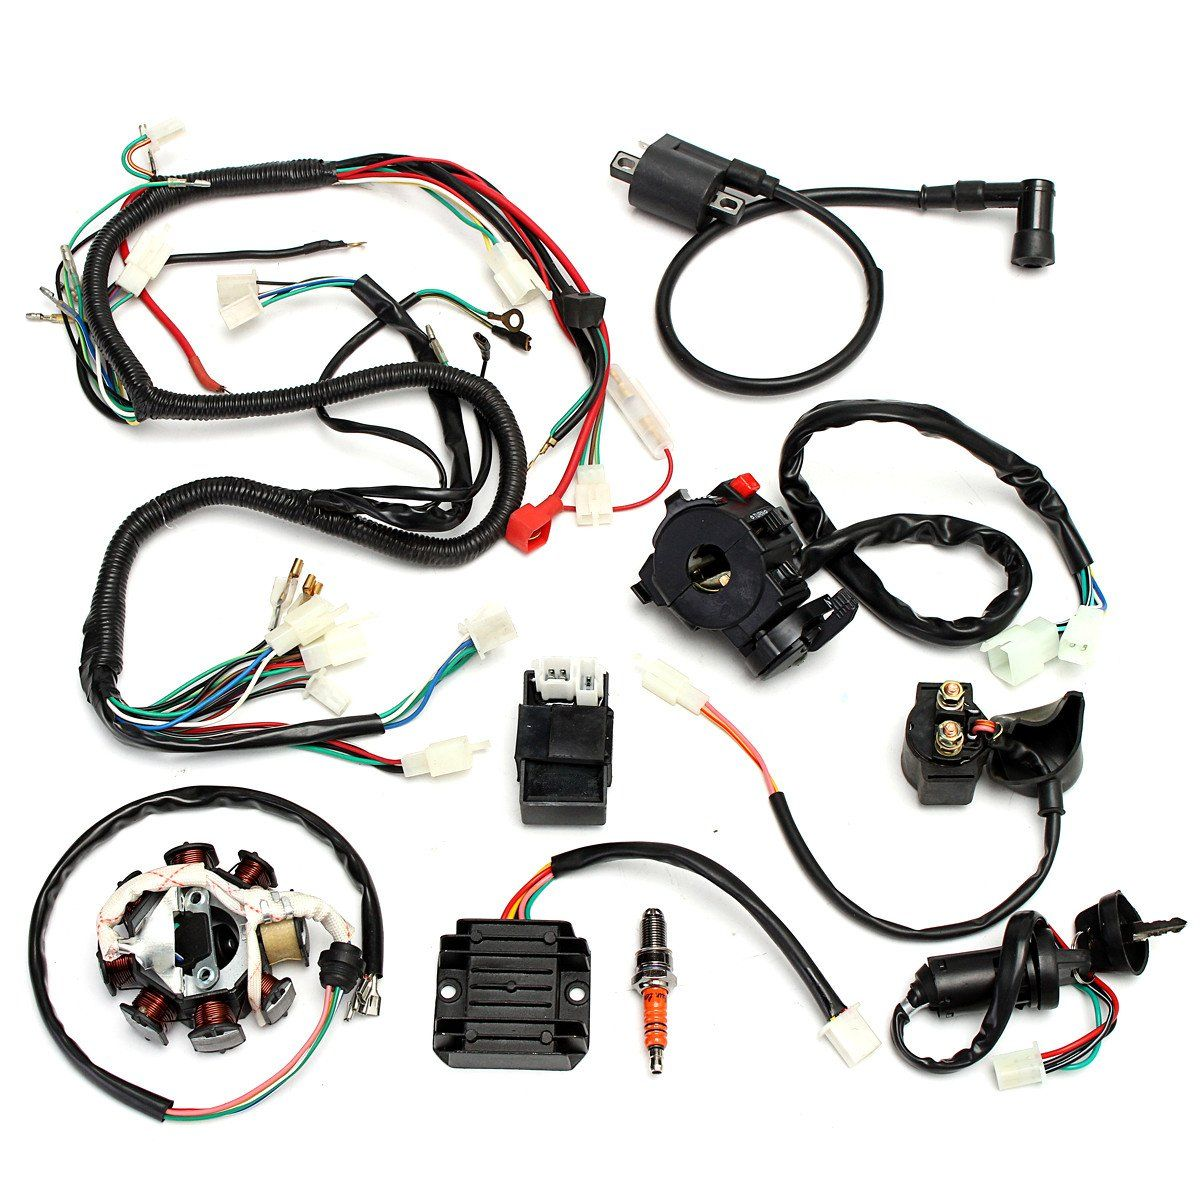 medium resolution of coolster 110cc atv parts furthermore 110cc pit bike engine diagram along with coolster 125cc atv wiring diagram and razor e300 stator 150cc tao tao